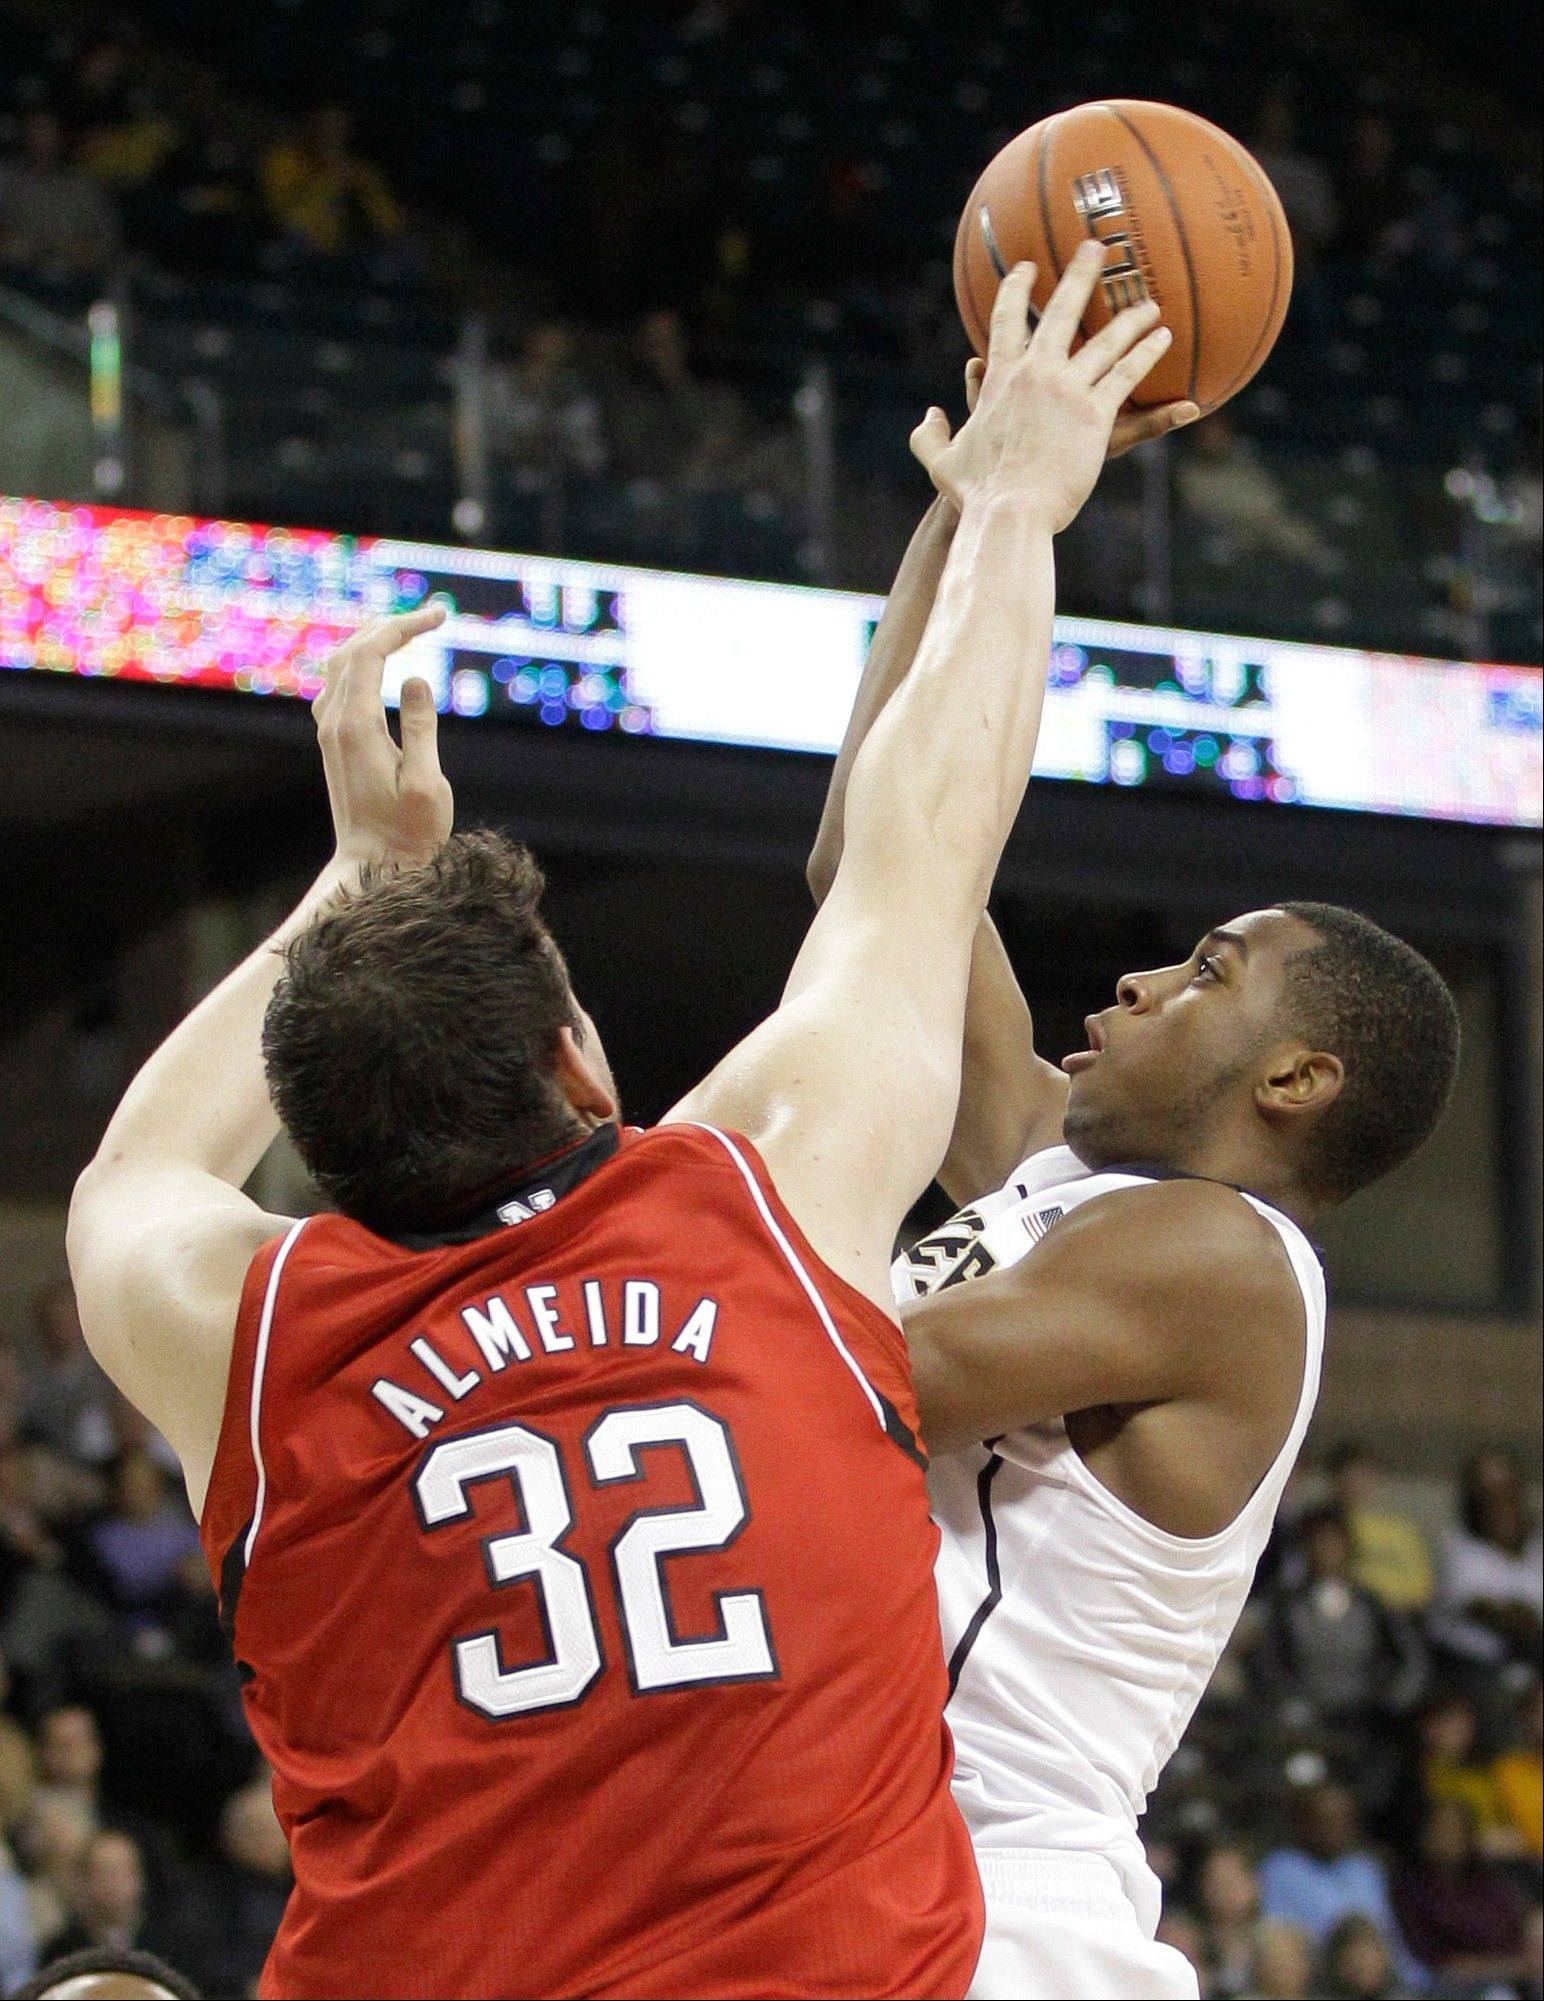 Nebraska's Andre Almeida blocks a shot by Wake Forest's Codi Miller-McIntyre Tuesday during the first half in Winston-Salem, N.C.